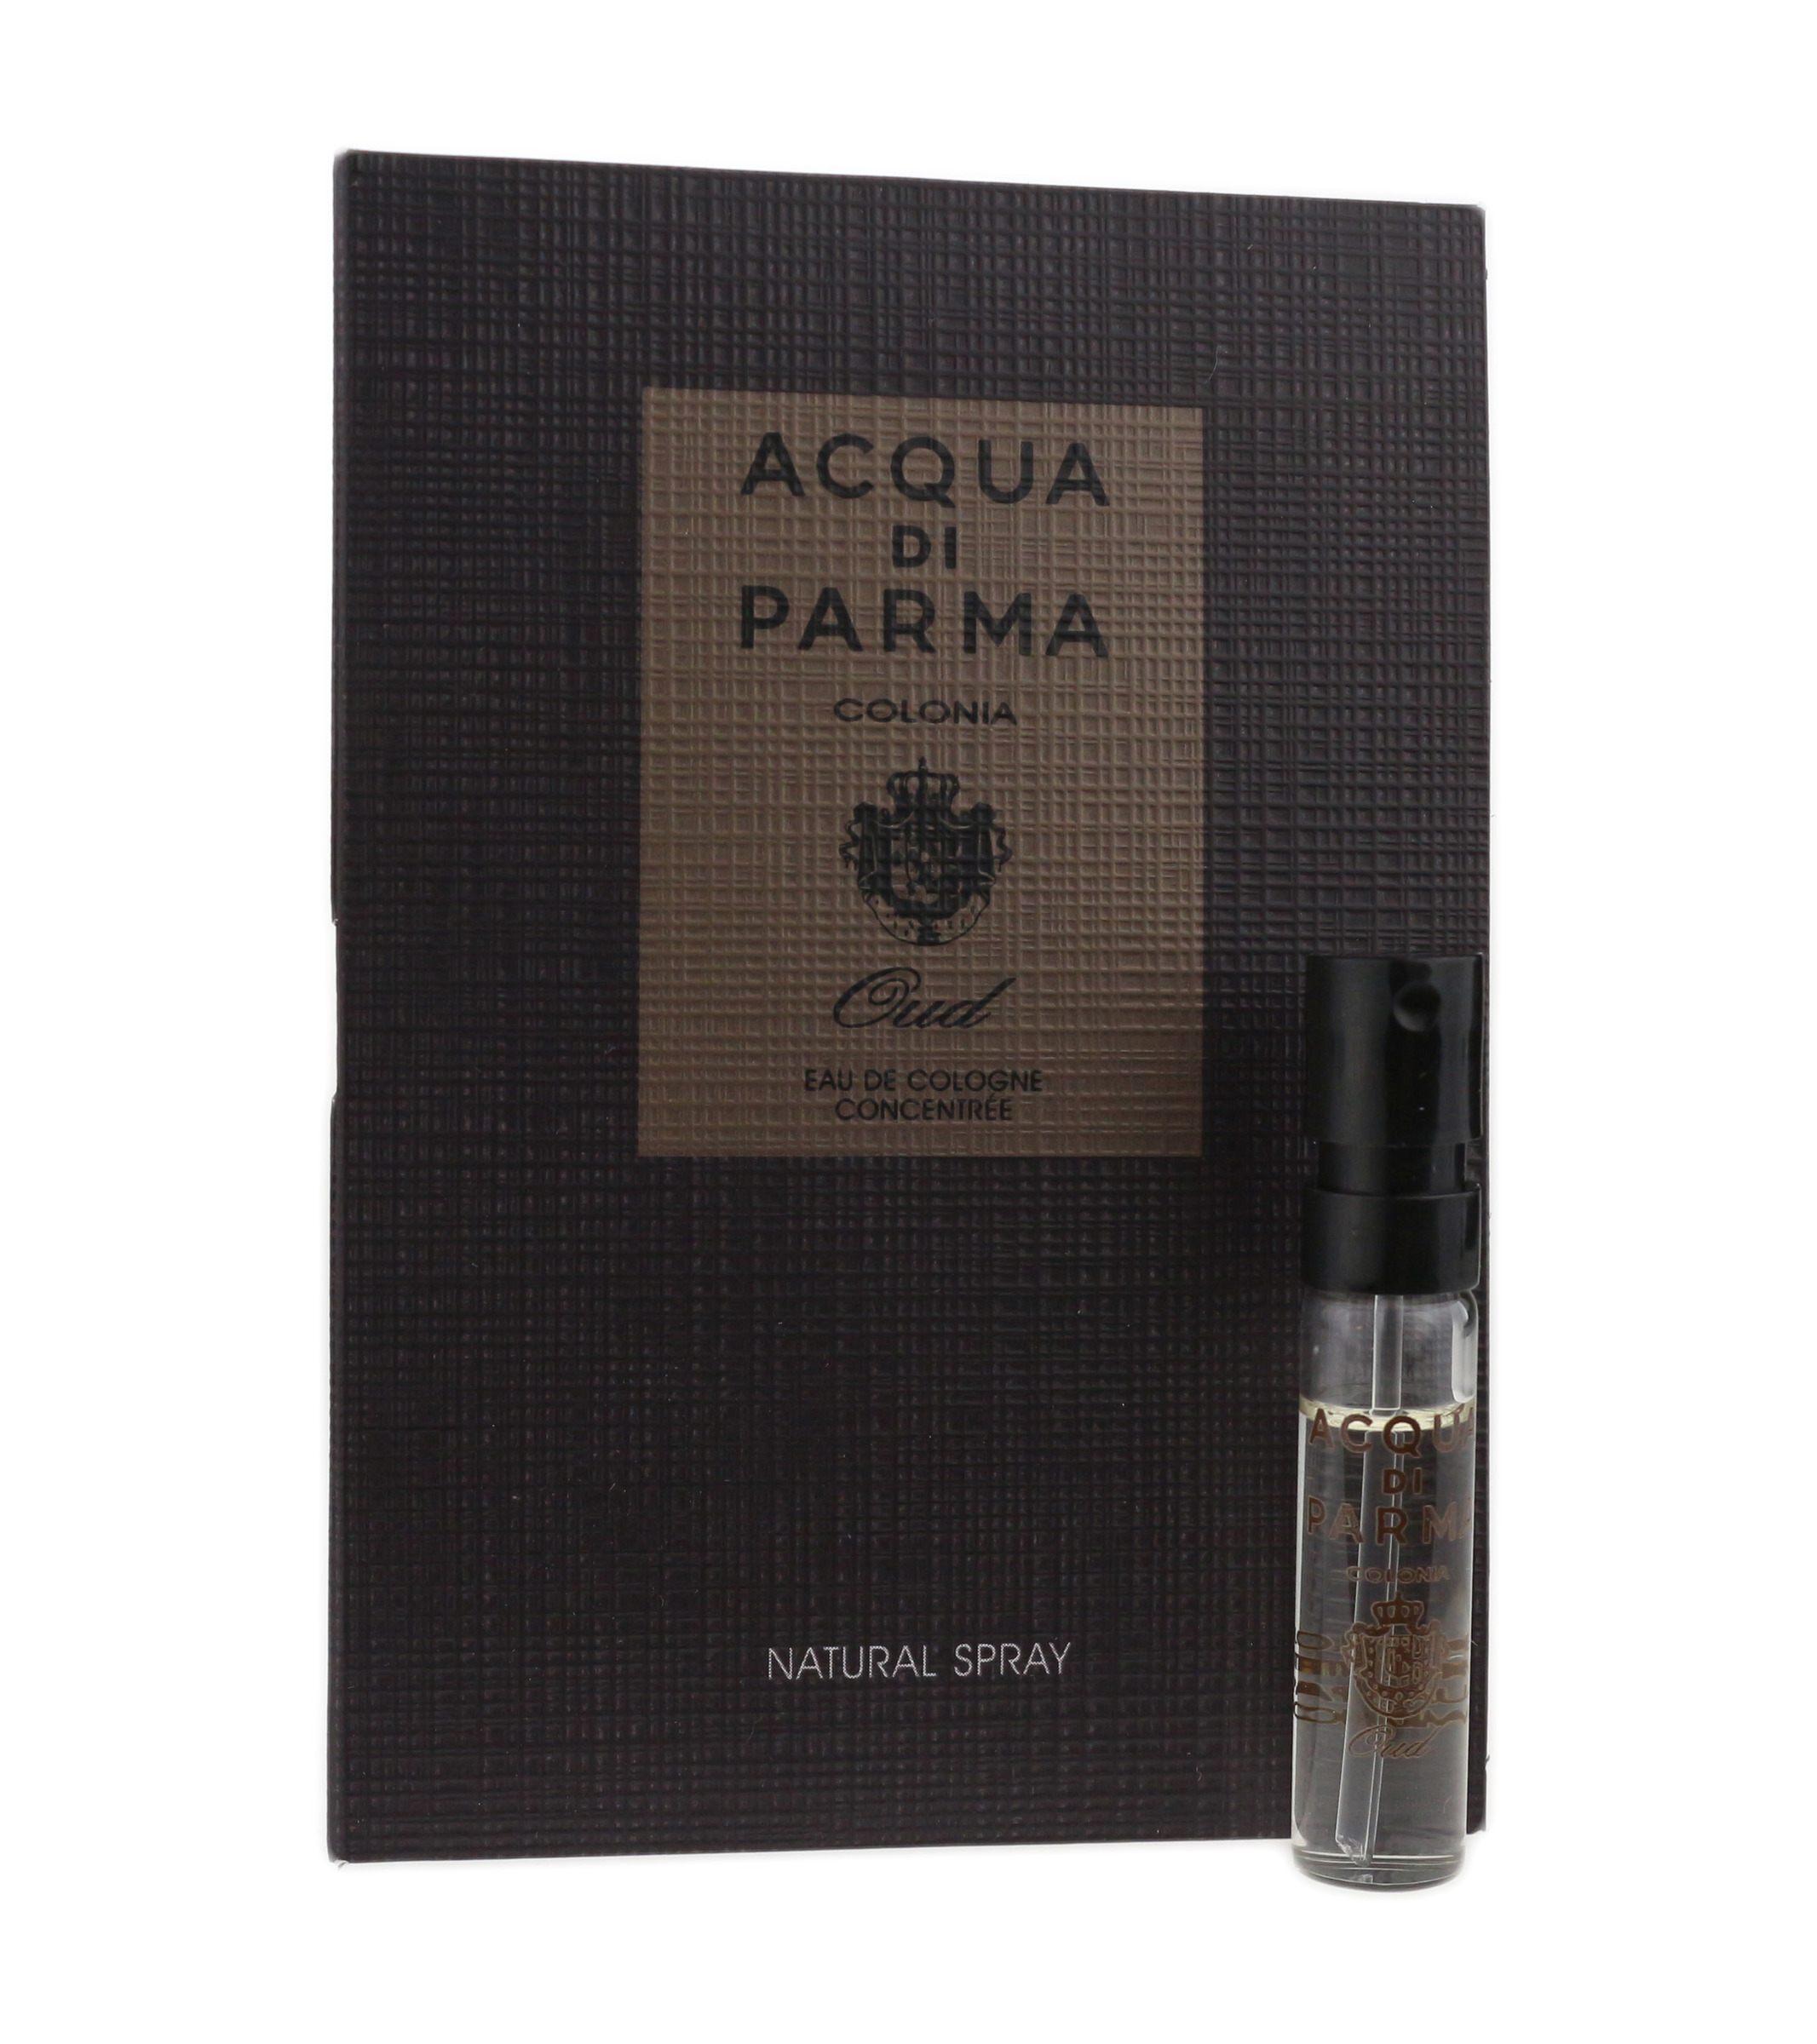 Acqua Di Parma Colonia Oud Vial.jpeg